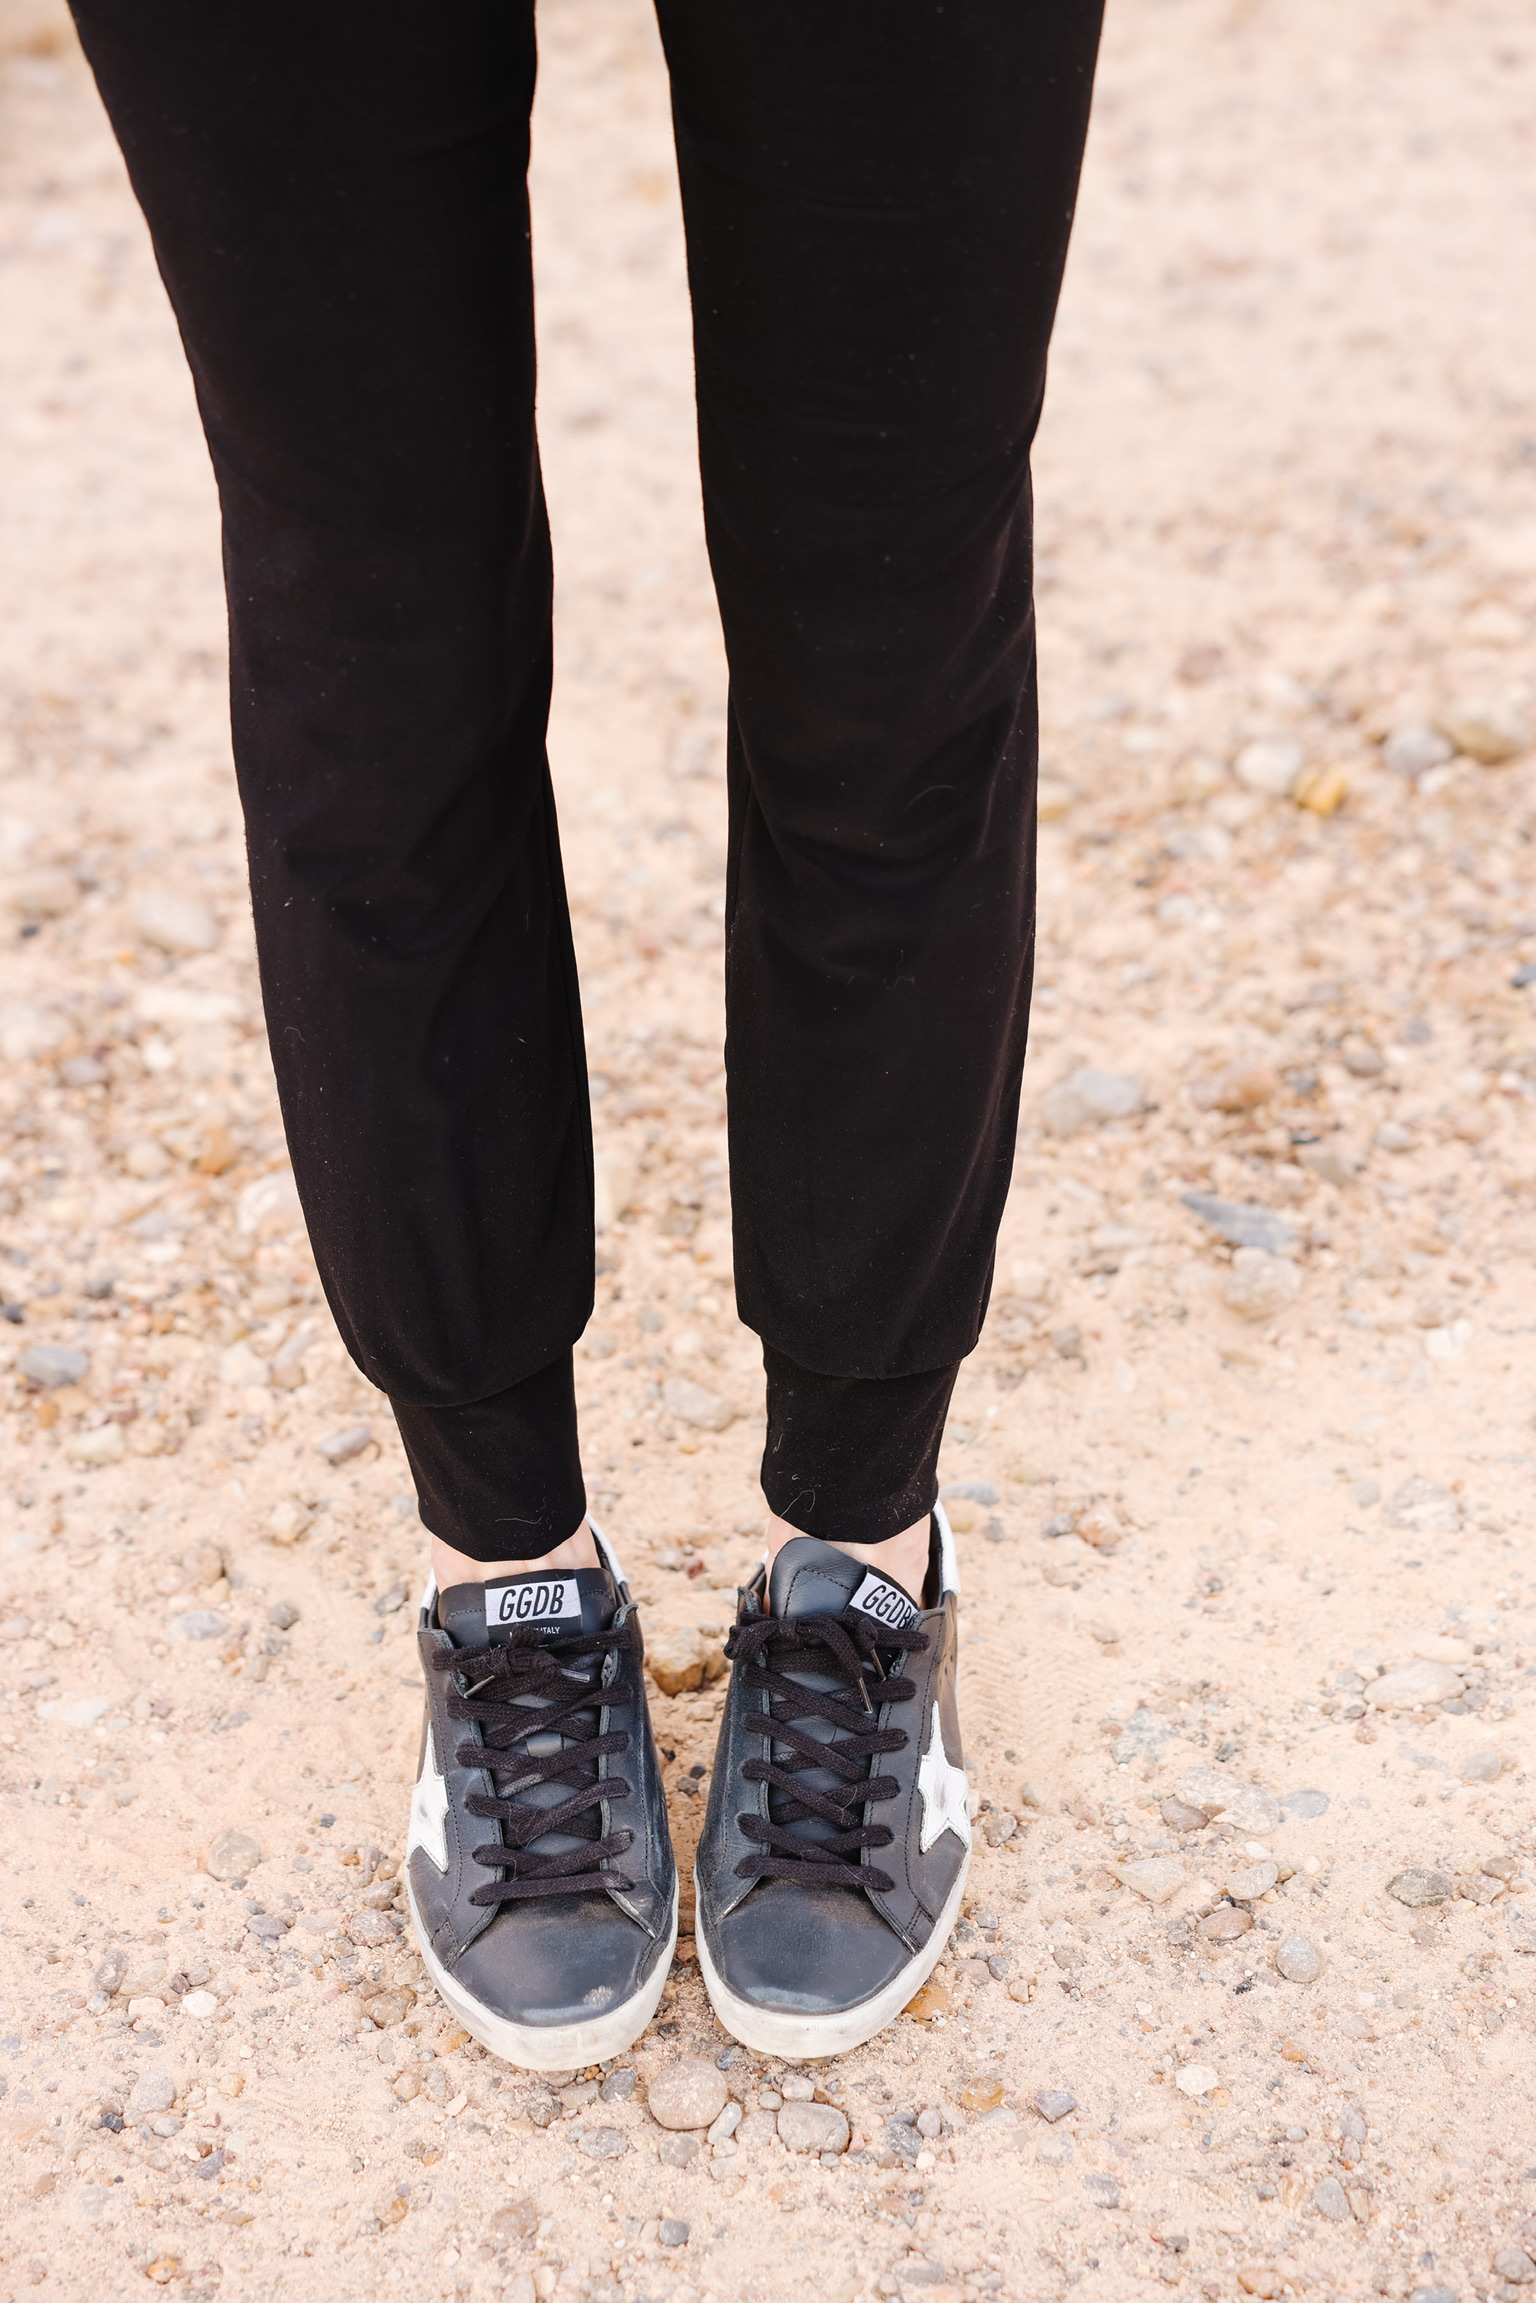 Elevated Basics, Erin Busbee of Busbee wearing black golden goose sneakers with black joggers by Norma Kamali in south texas, what shoes to wear with jeans